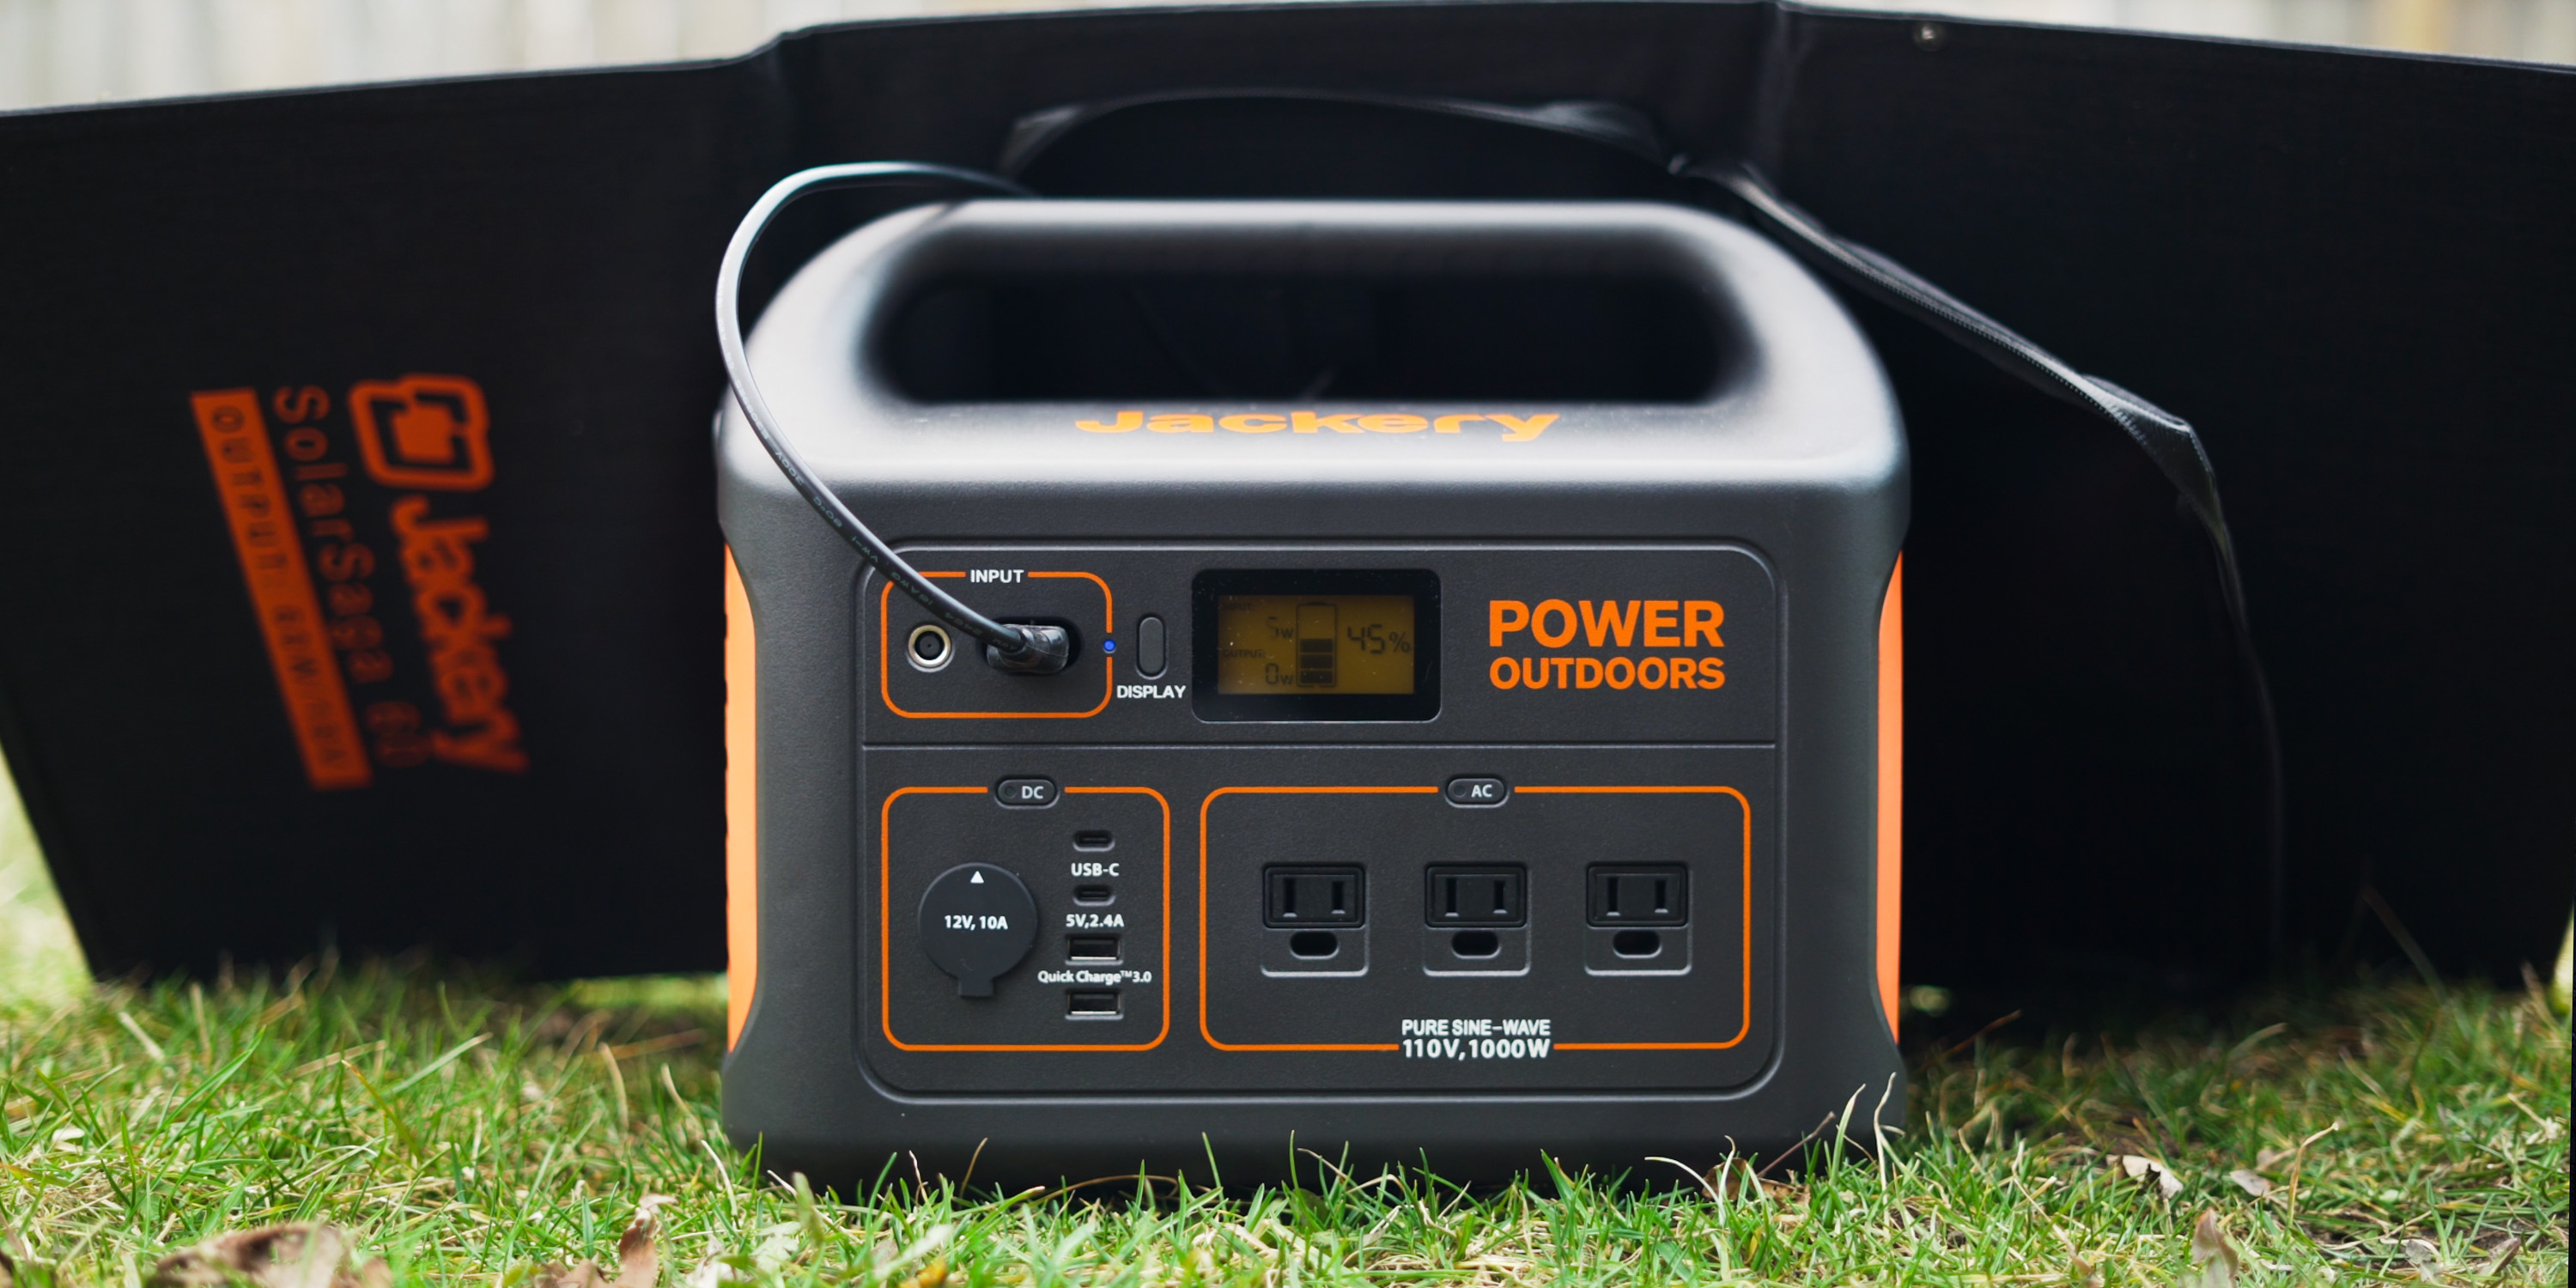 Charging the Explorer 1000 with a 60W Solar Saga panel